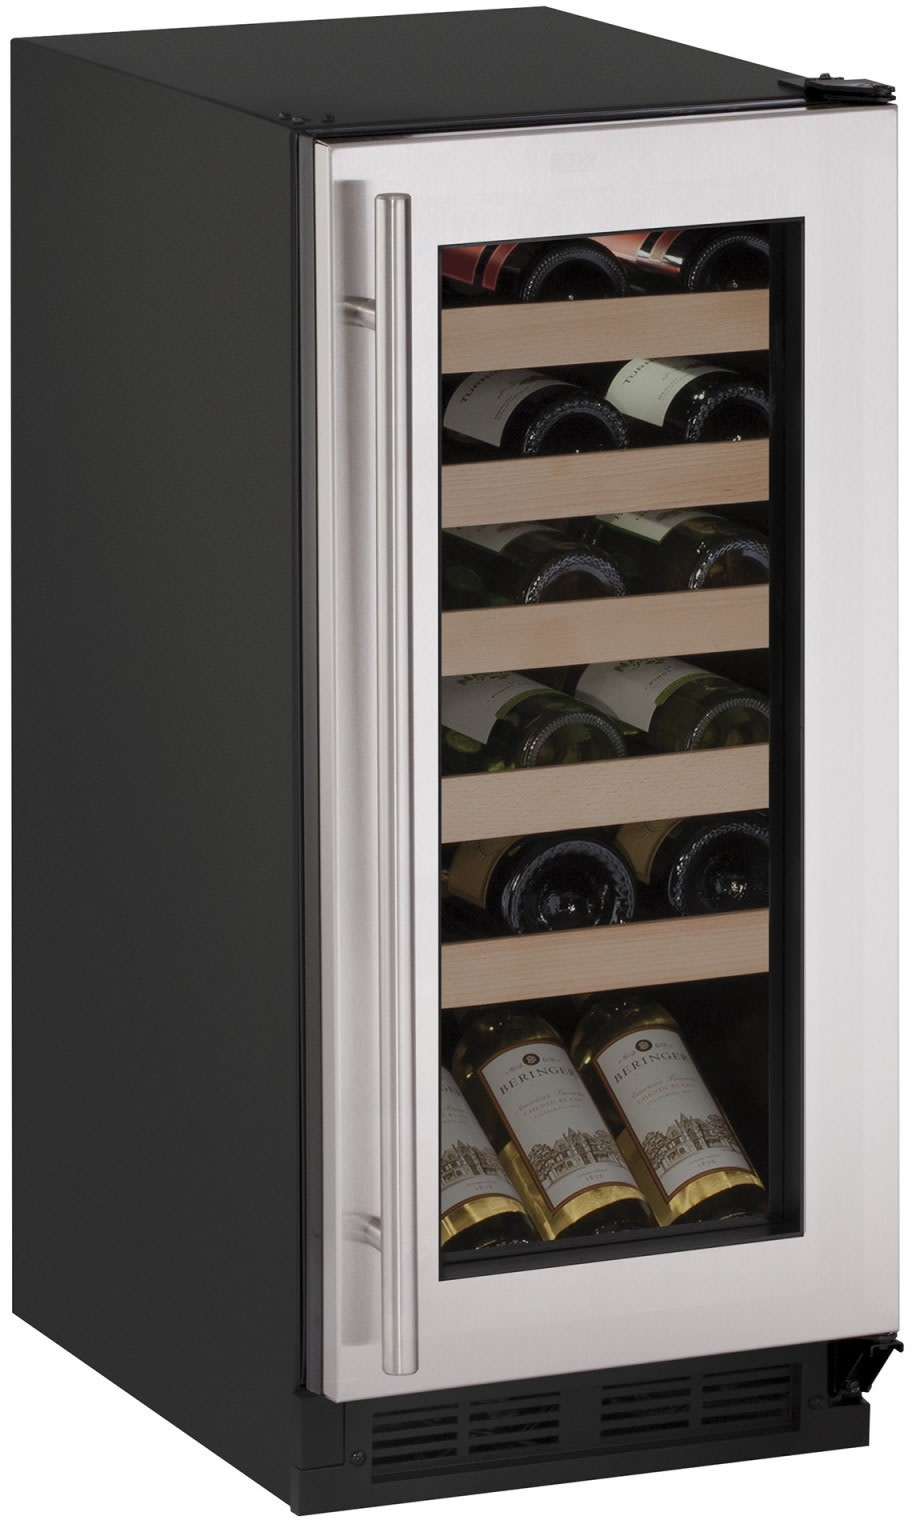 U-Line U1215WCS00B 15 Inch Undercounter Wine Storage with ...